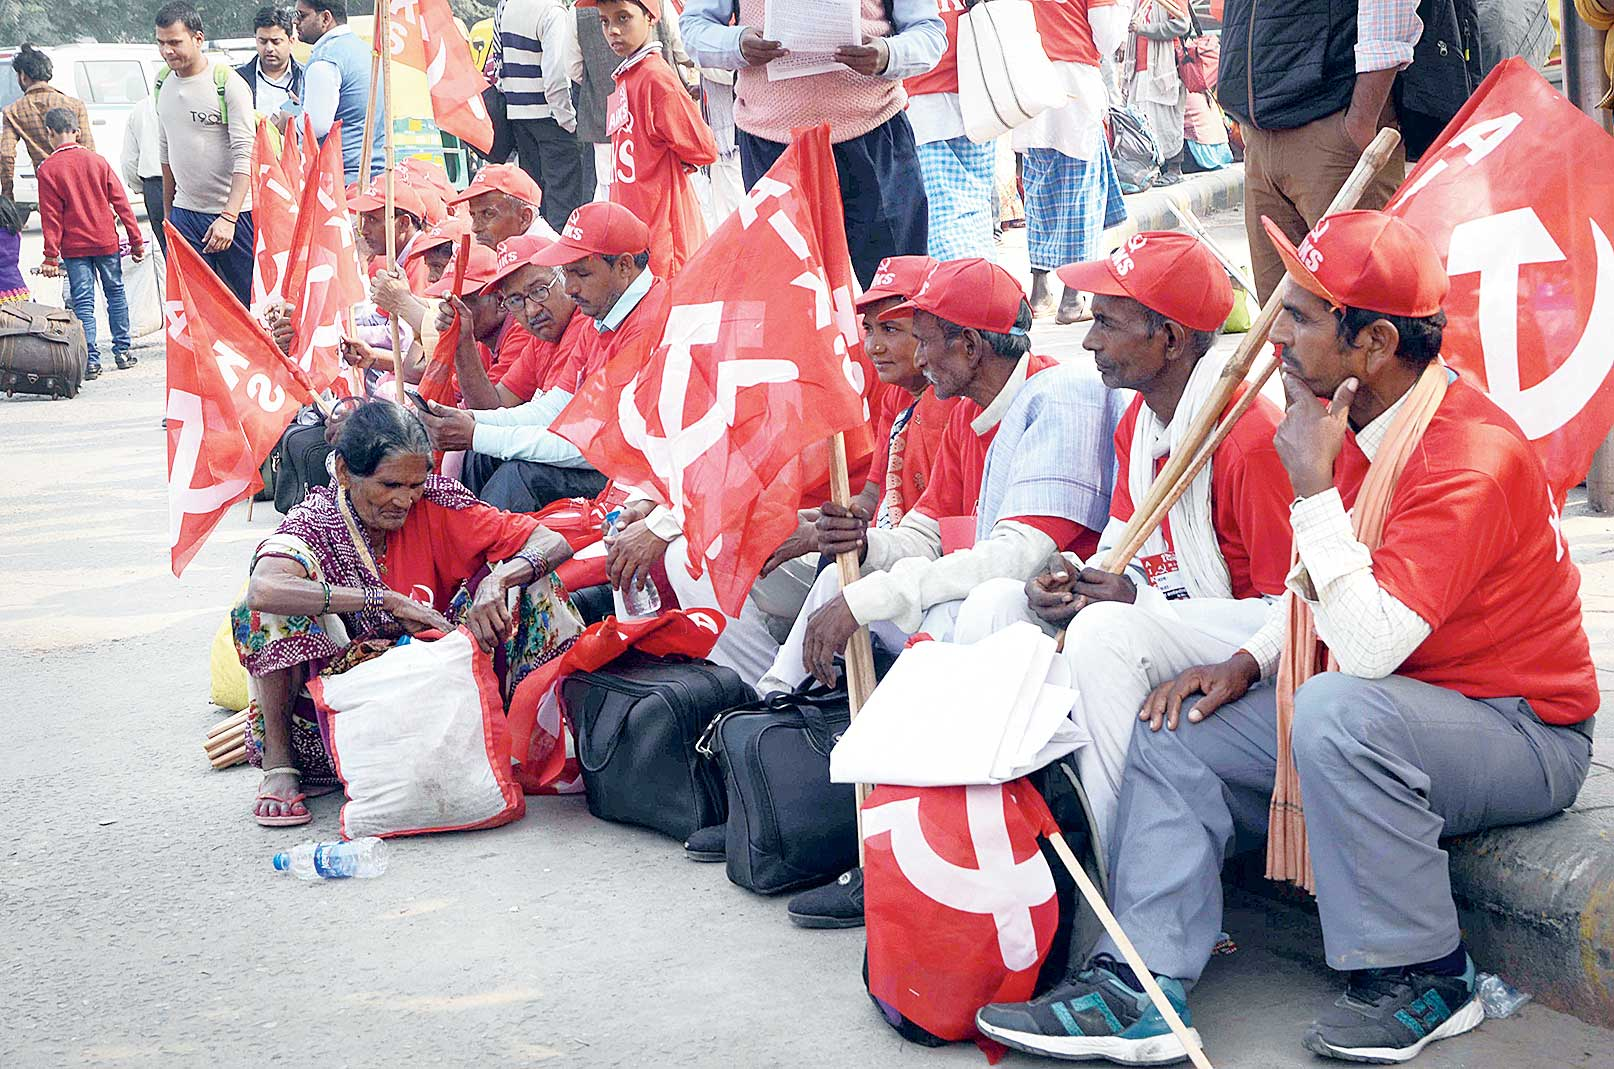 Farmers' protest podium becomes Opposition unity stage